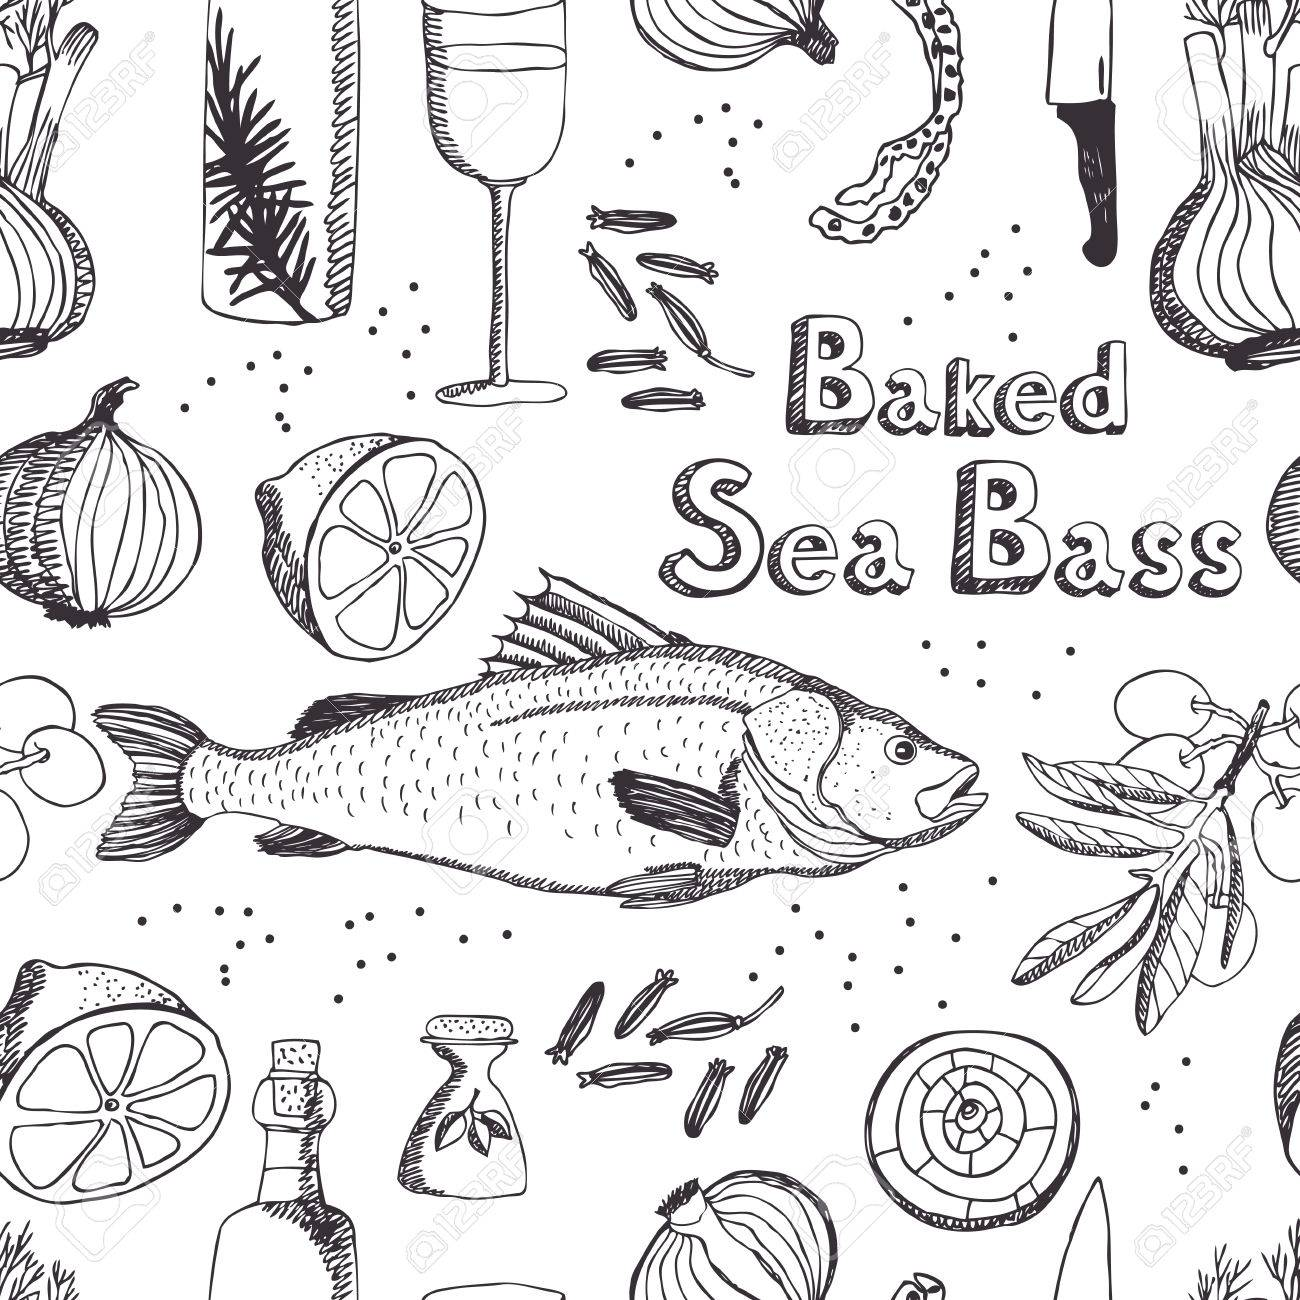 1300x1300 Baked Sea Bass Seamless Background Royalty Free Cliparts, Vectors